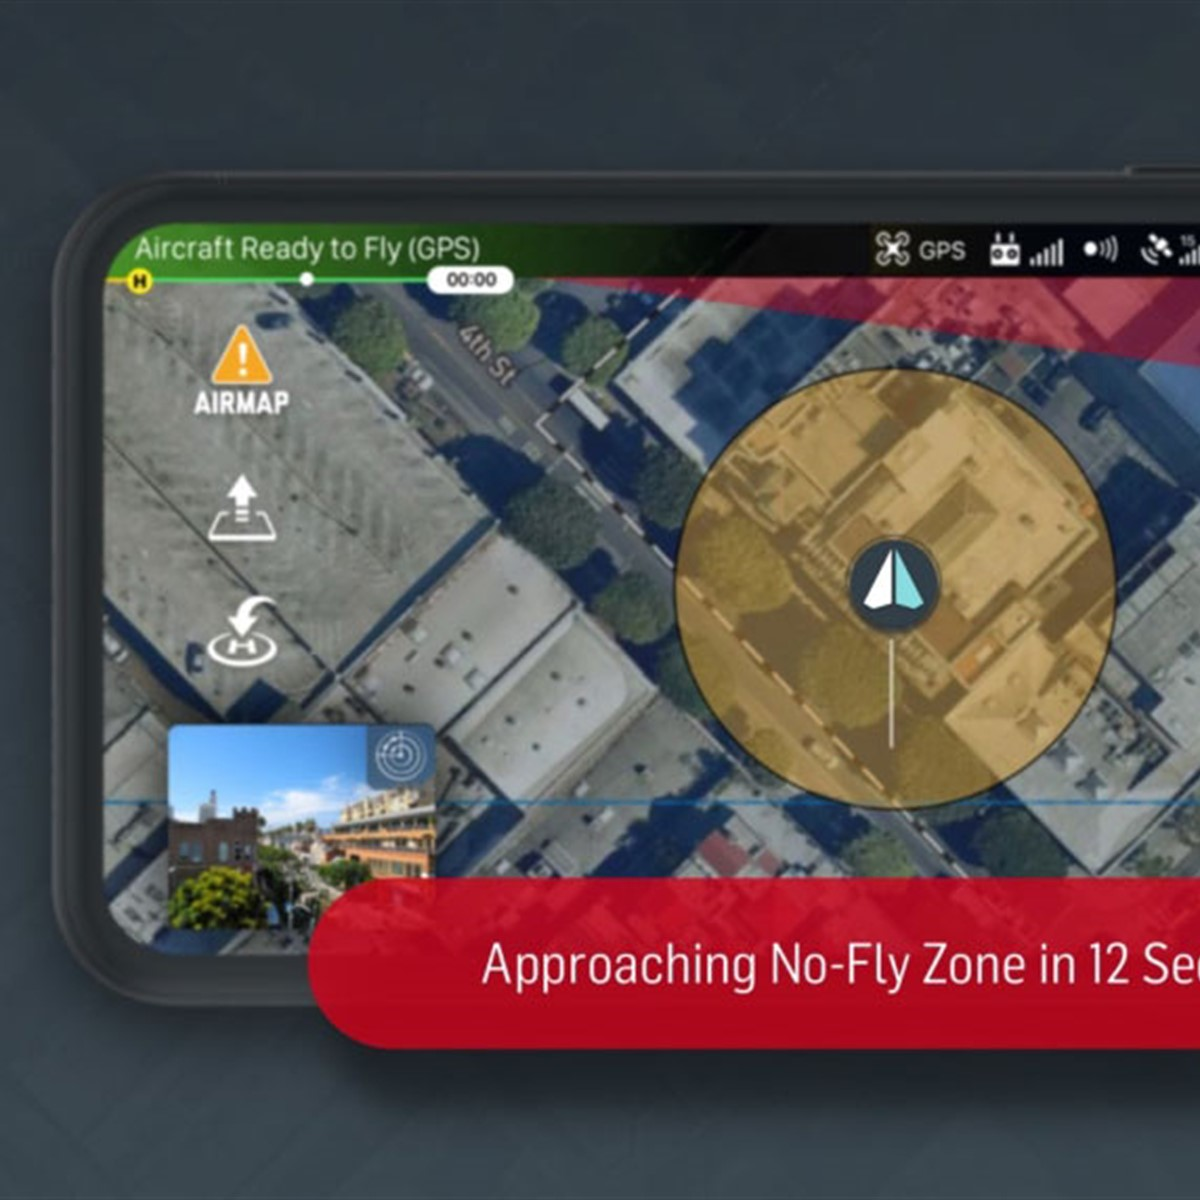 AirMap announces real-time geofencing alerts on Android, iOS